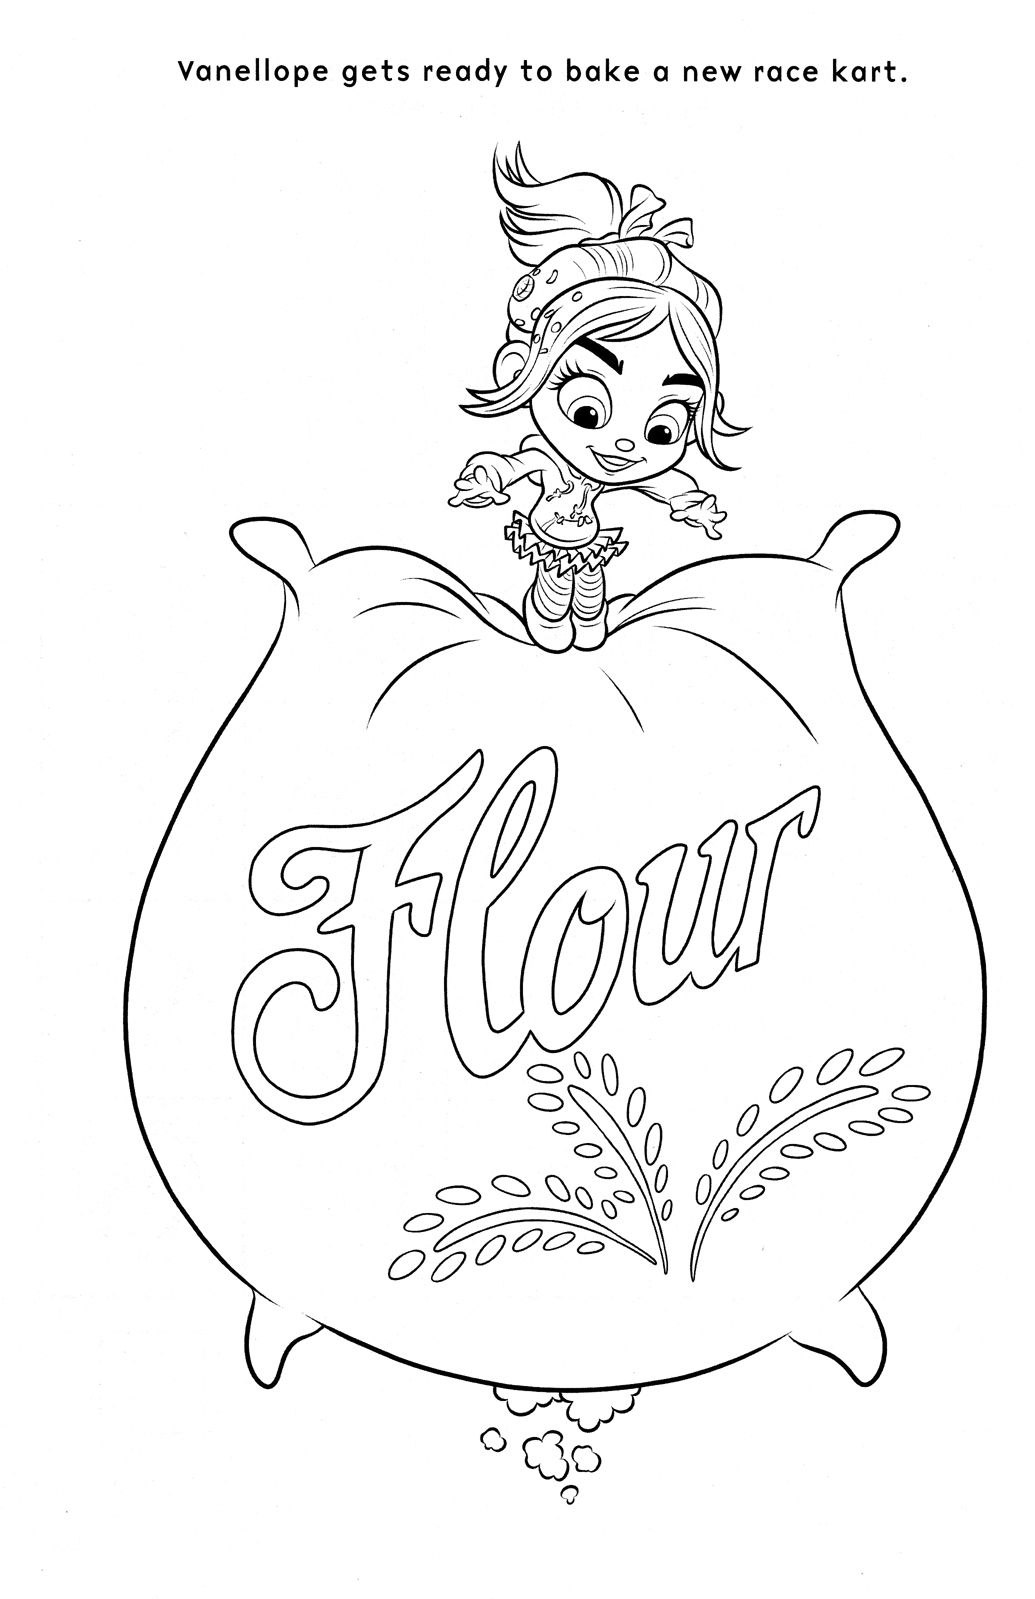 Wreck-It Ralph coloring page.   Coloring pages ~   Pinterest